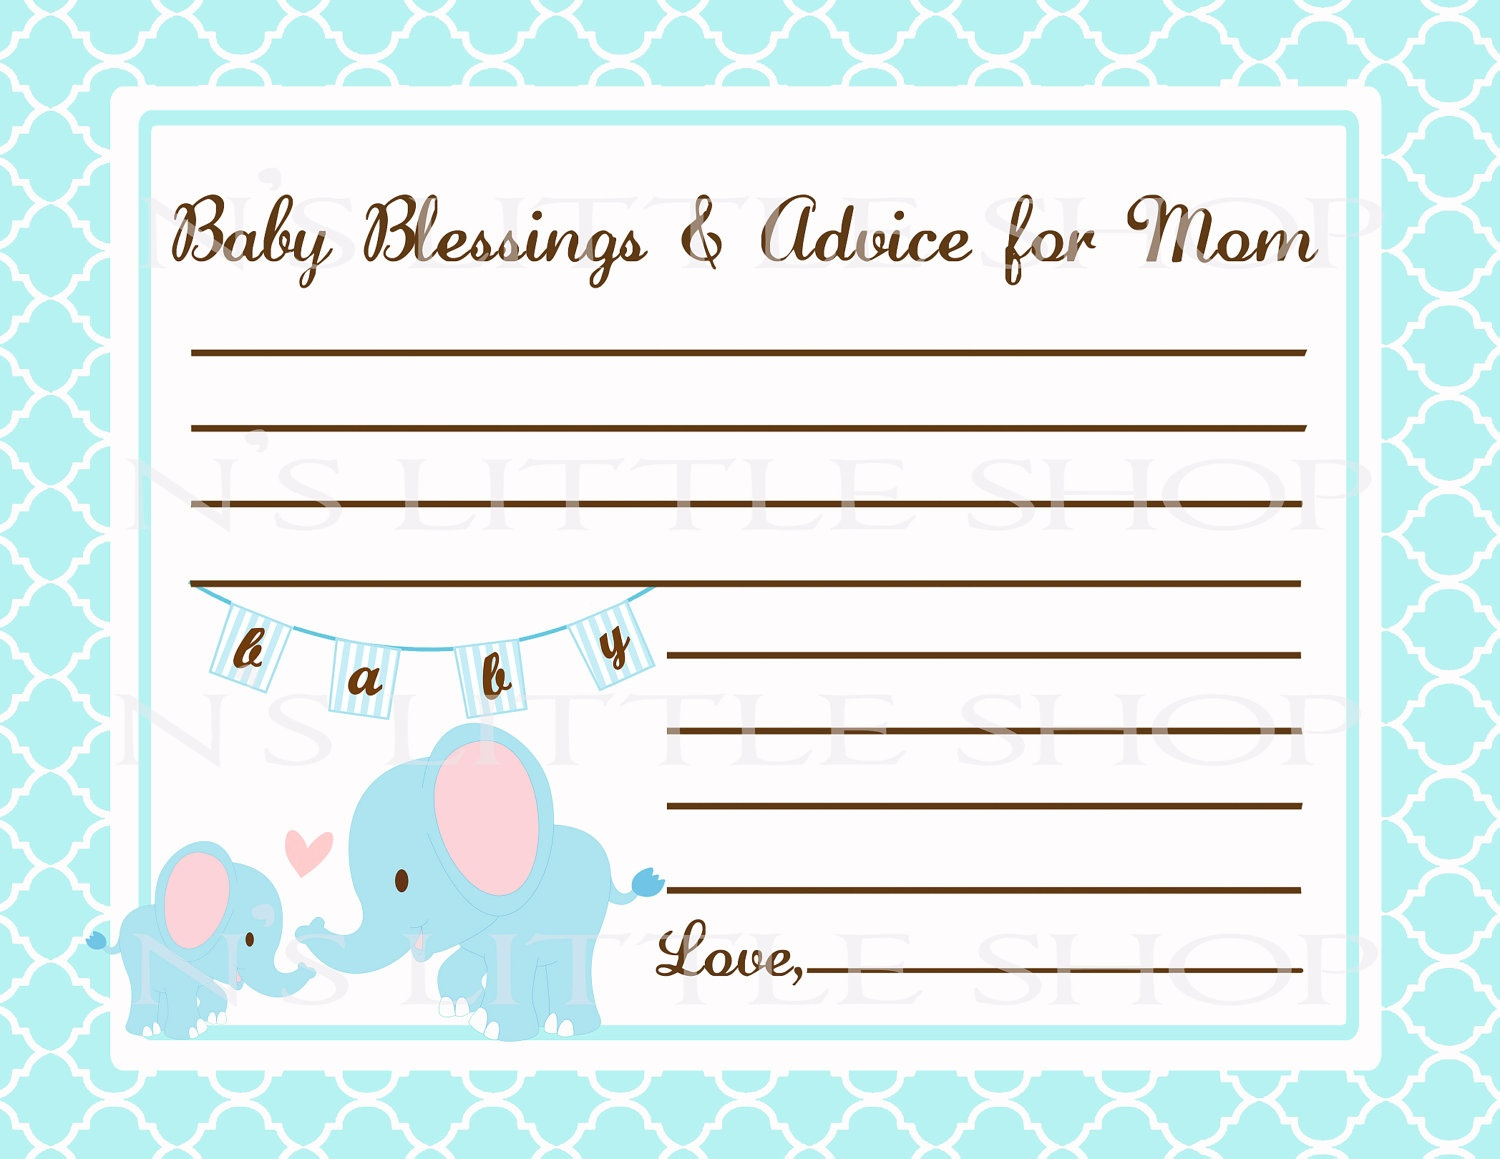 Free Printable Baby Shower Advice Cards - Printable Cards - Free Printable Baby Shower Advice Cards